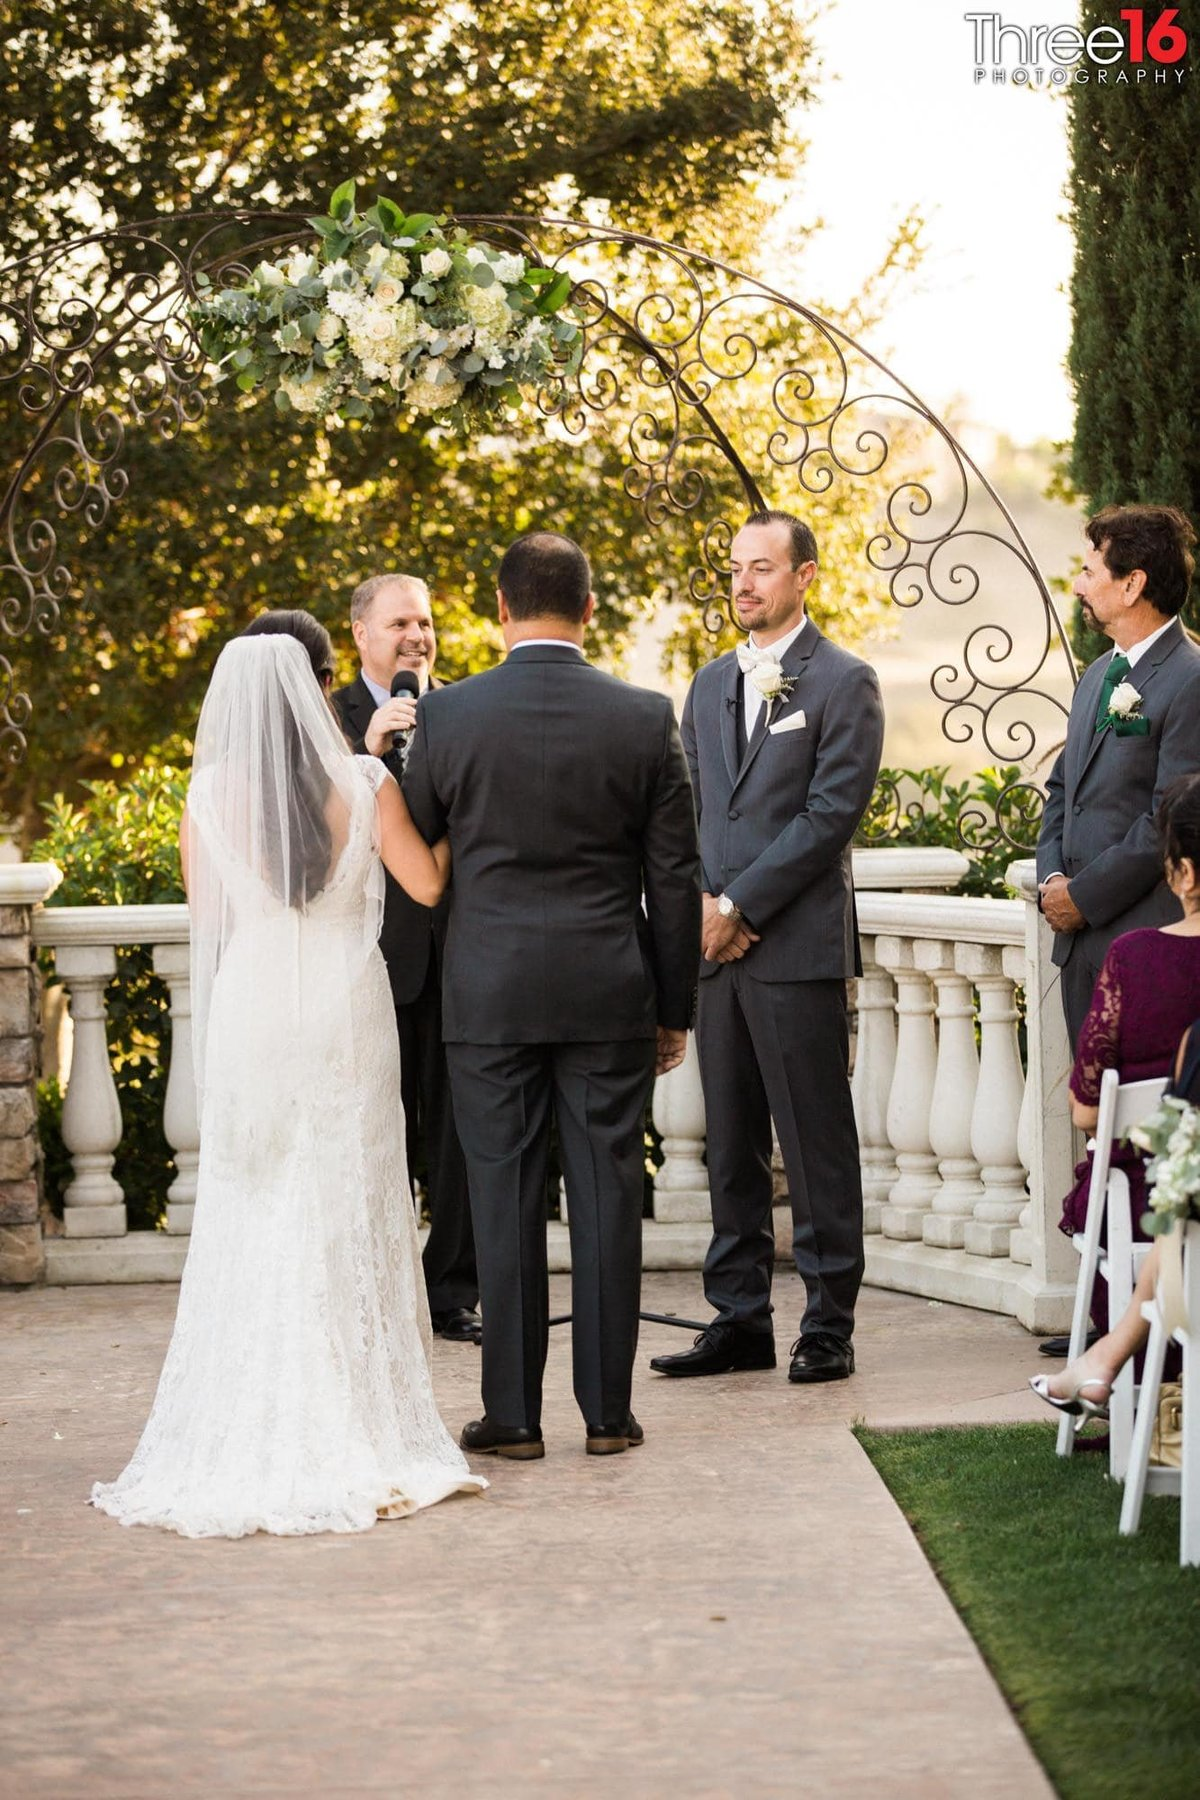 Wedding  Ceremony taking place at Wedgewood Vellano Country Club in Chino Hills, CA